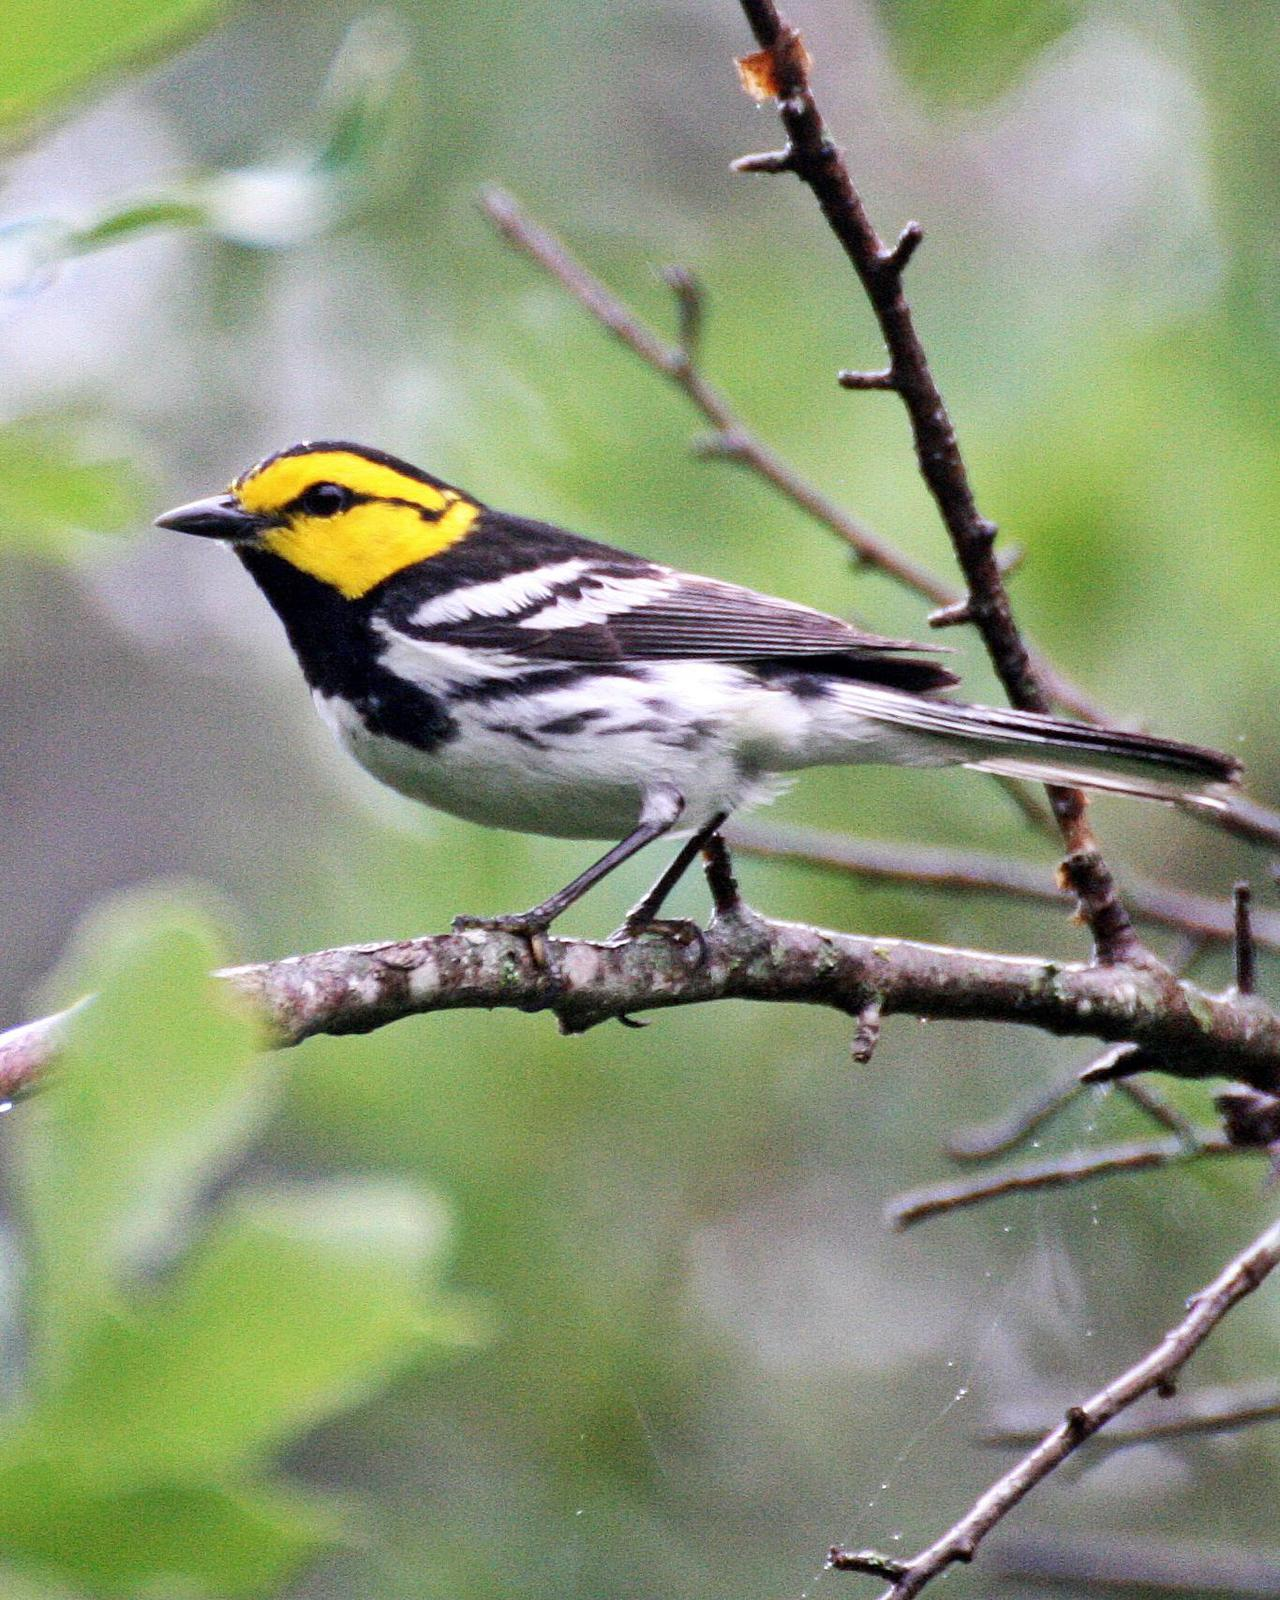 Golden-cheeked Warbler Photo by Andrew Theus